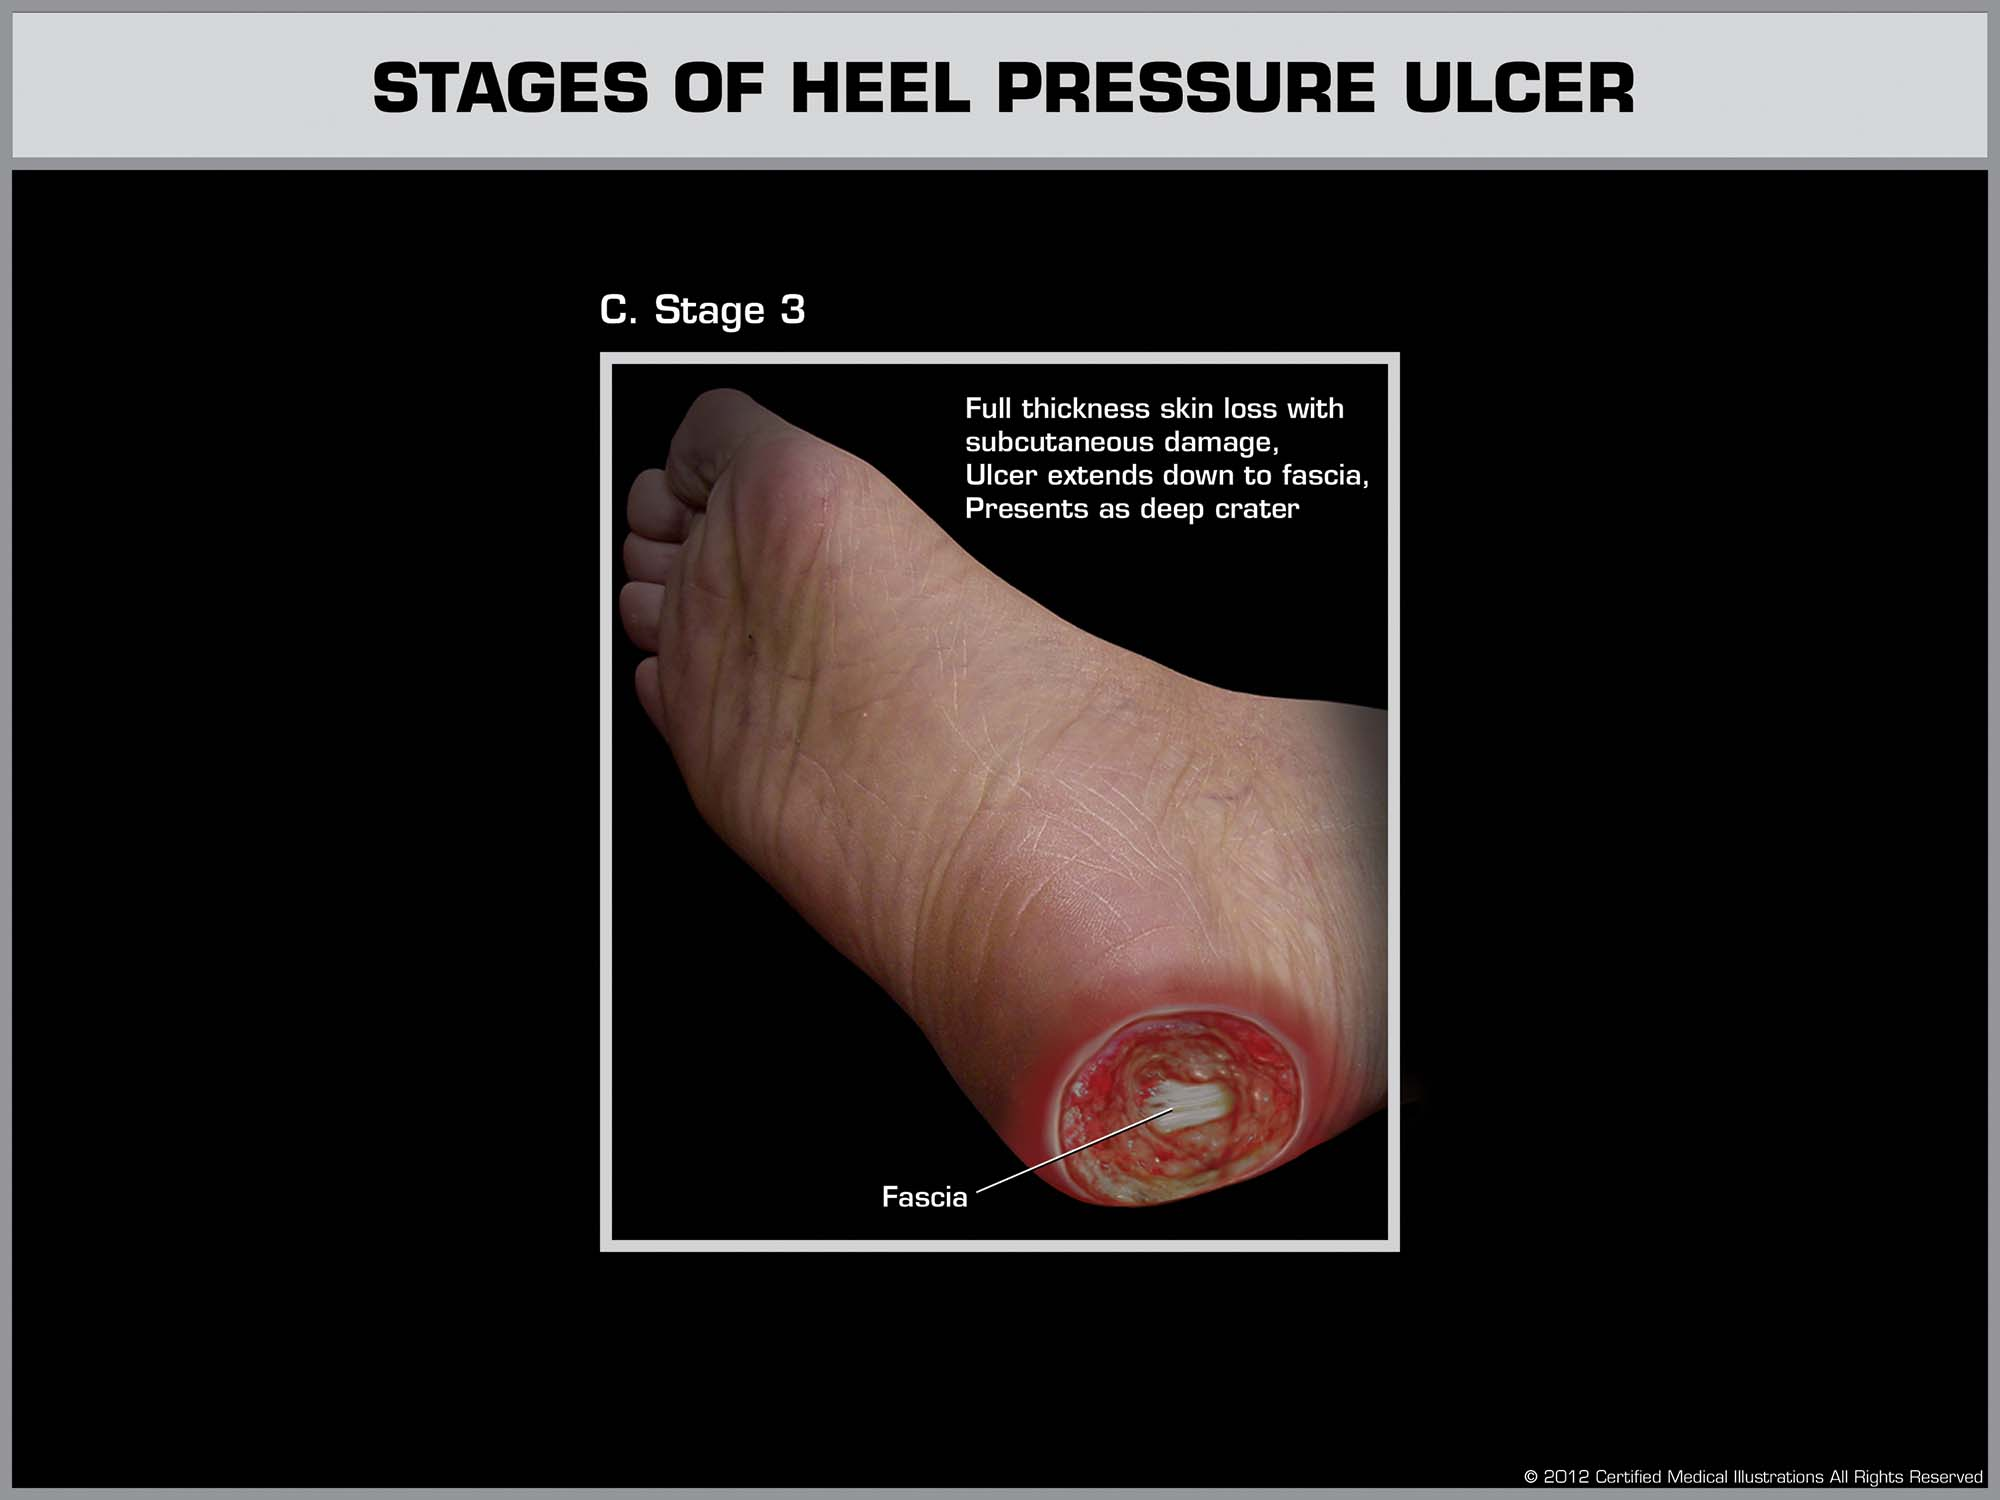 Development of a Heal Ulcer - Stage 3 - Law Office of Andrew A. Ballerini